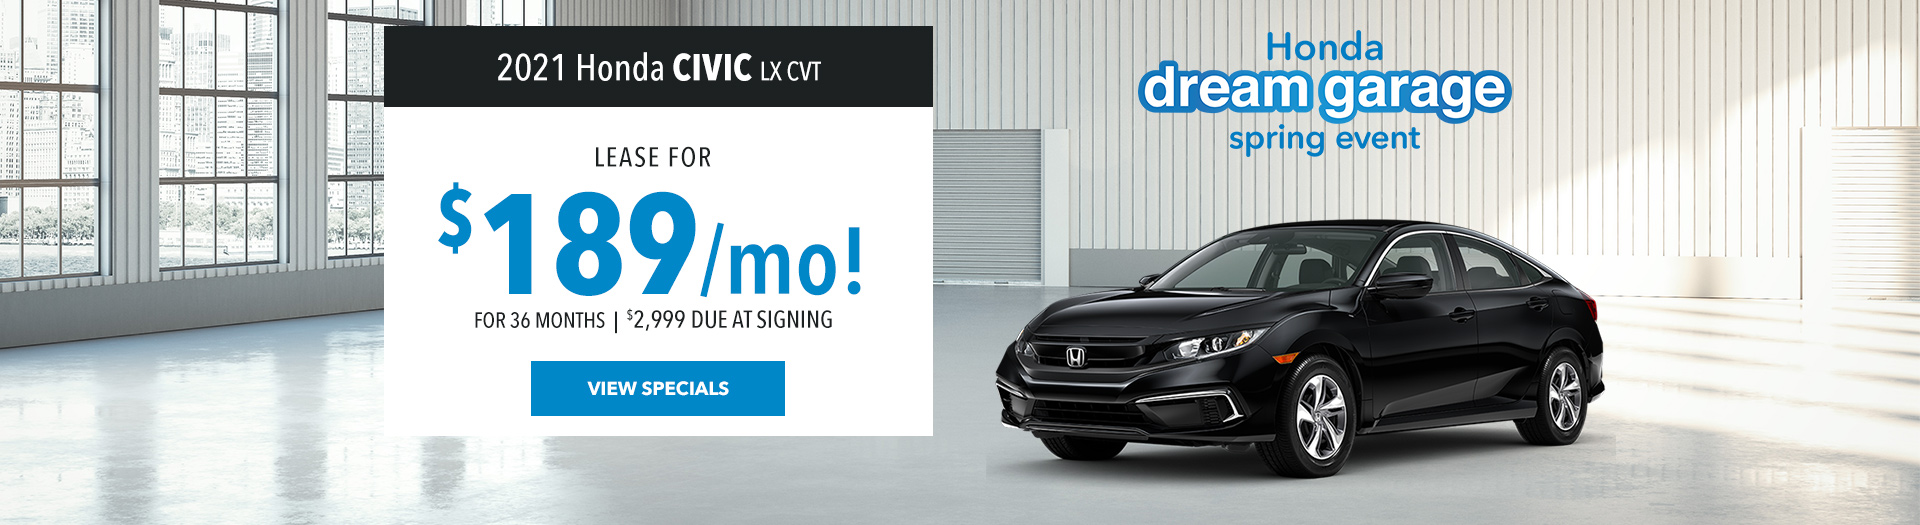 Civic March Offer